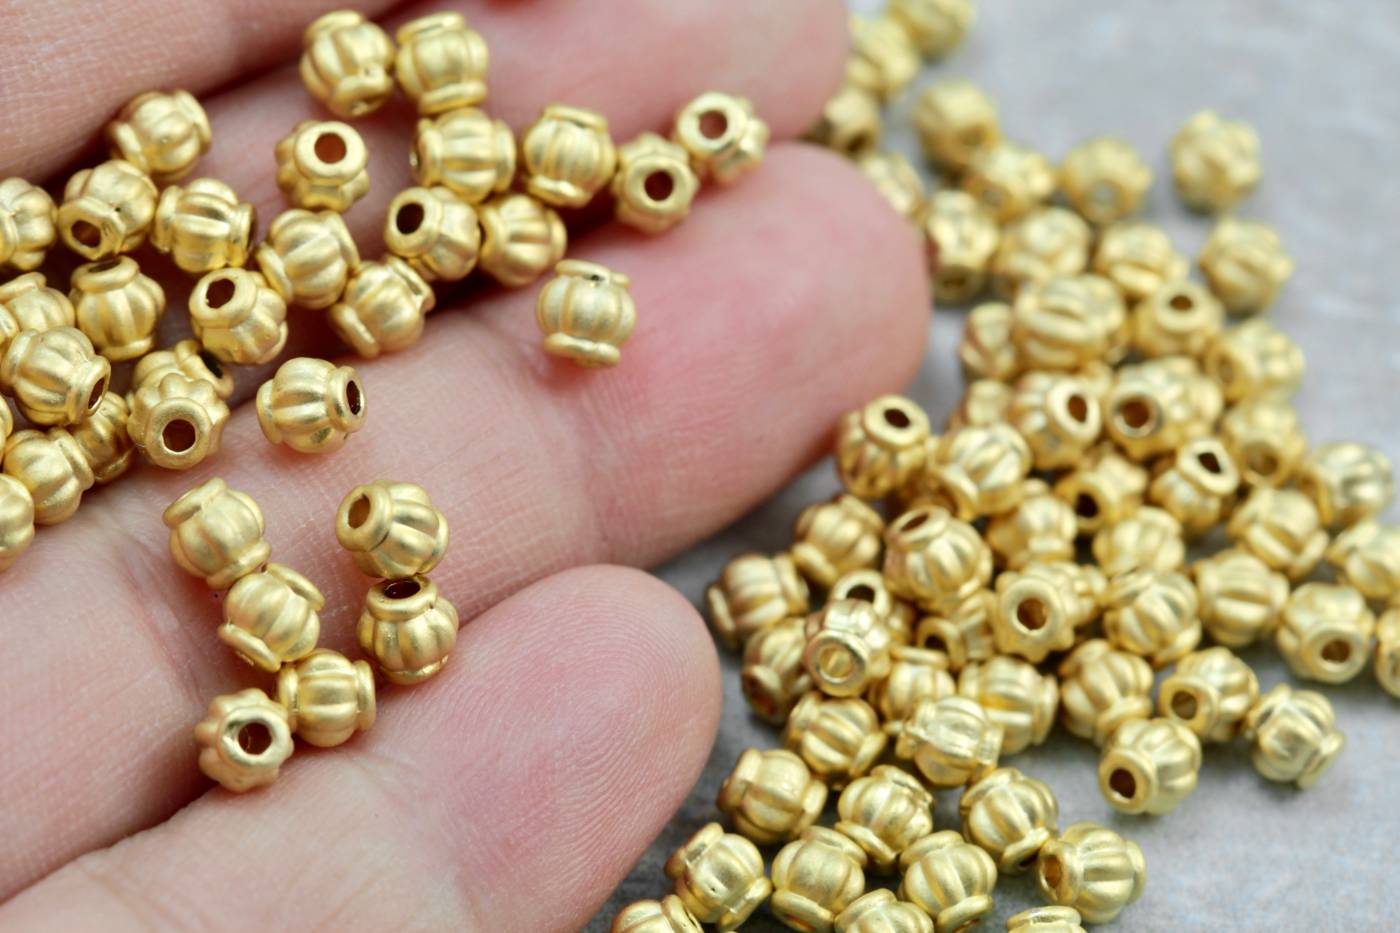 4mm-mini-spacer-metal-beads.jpg